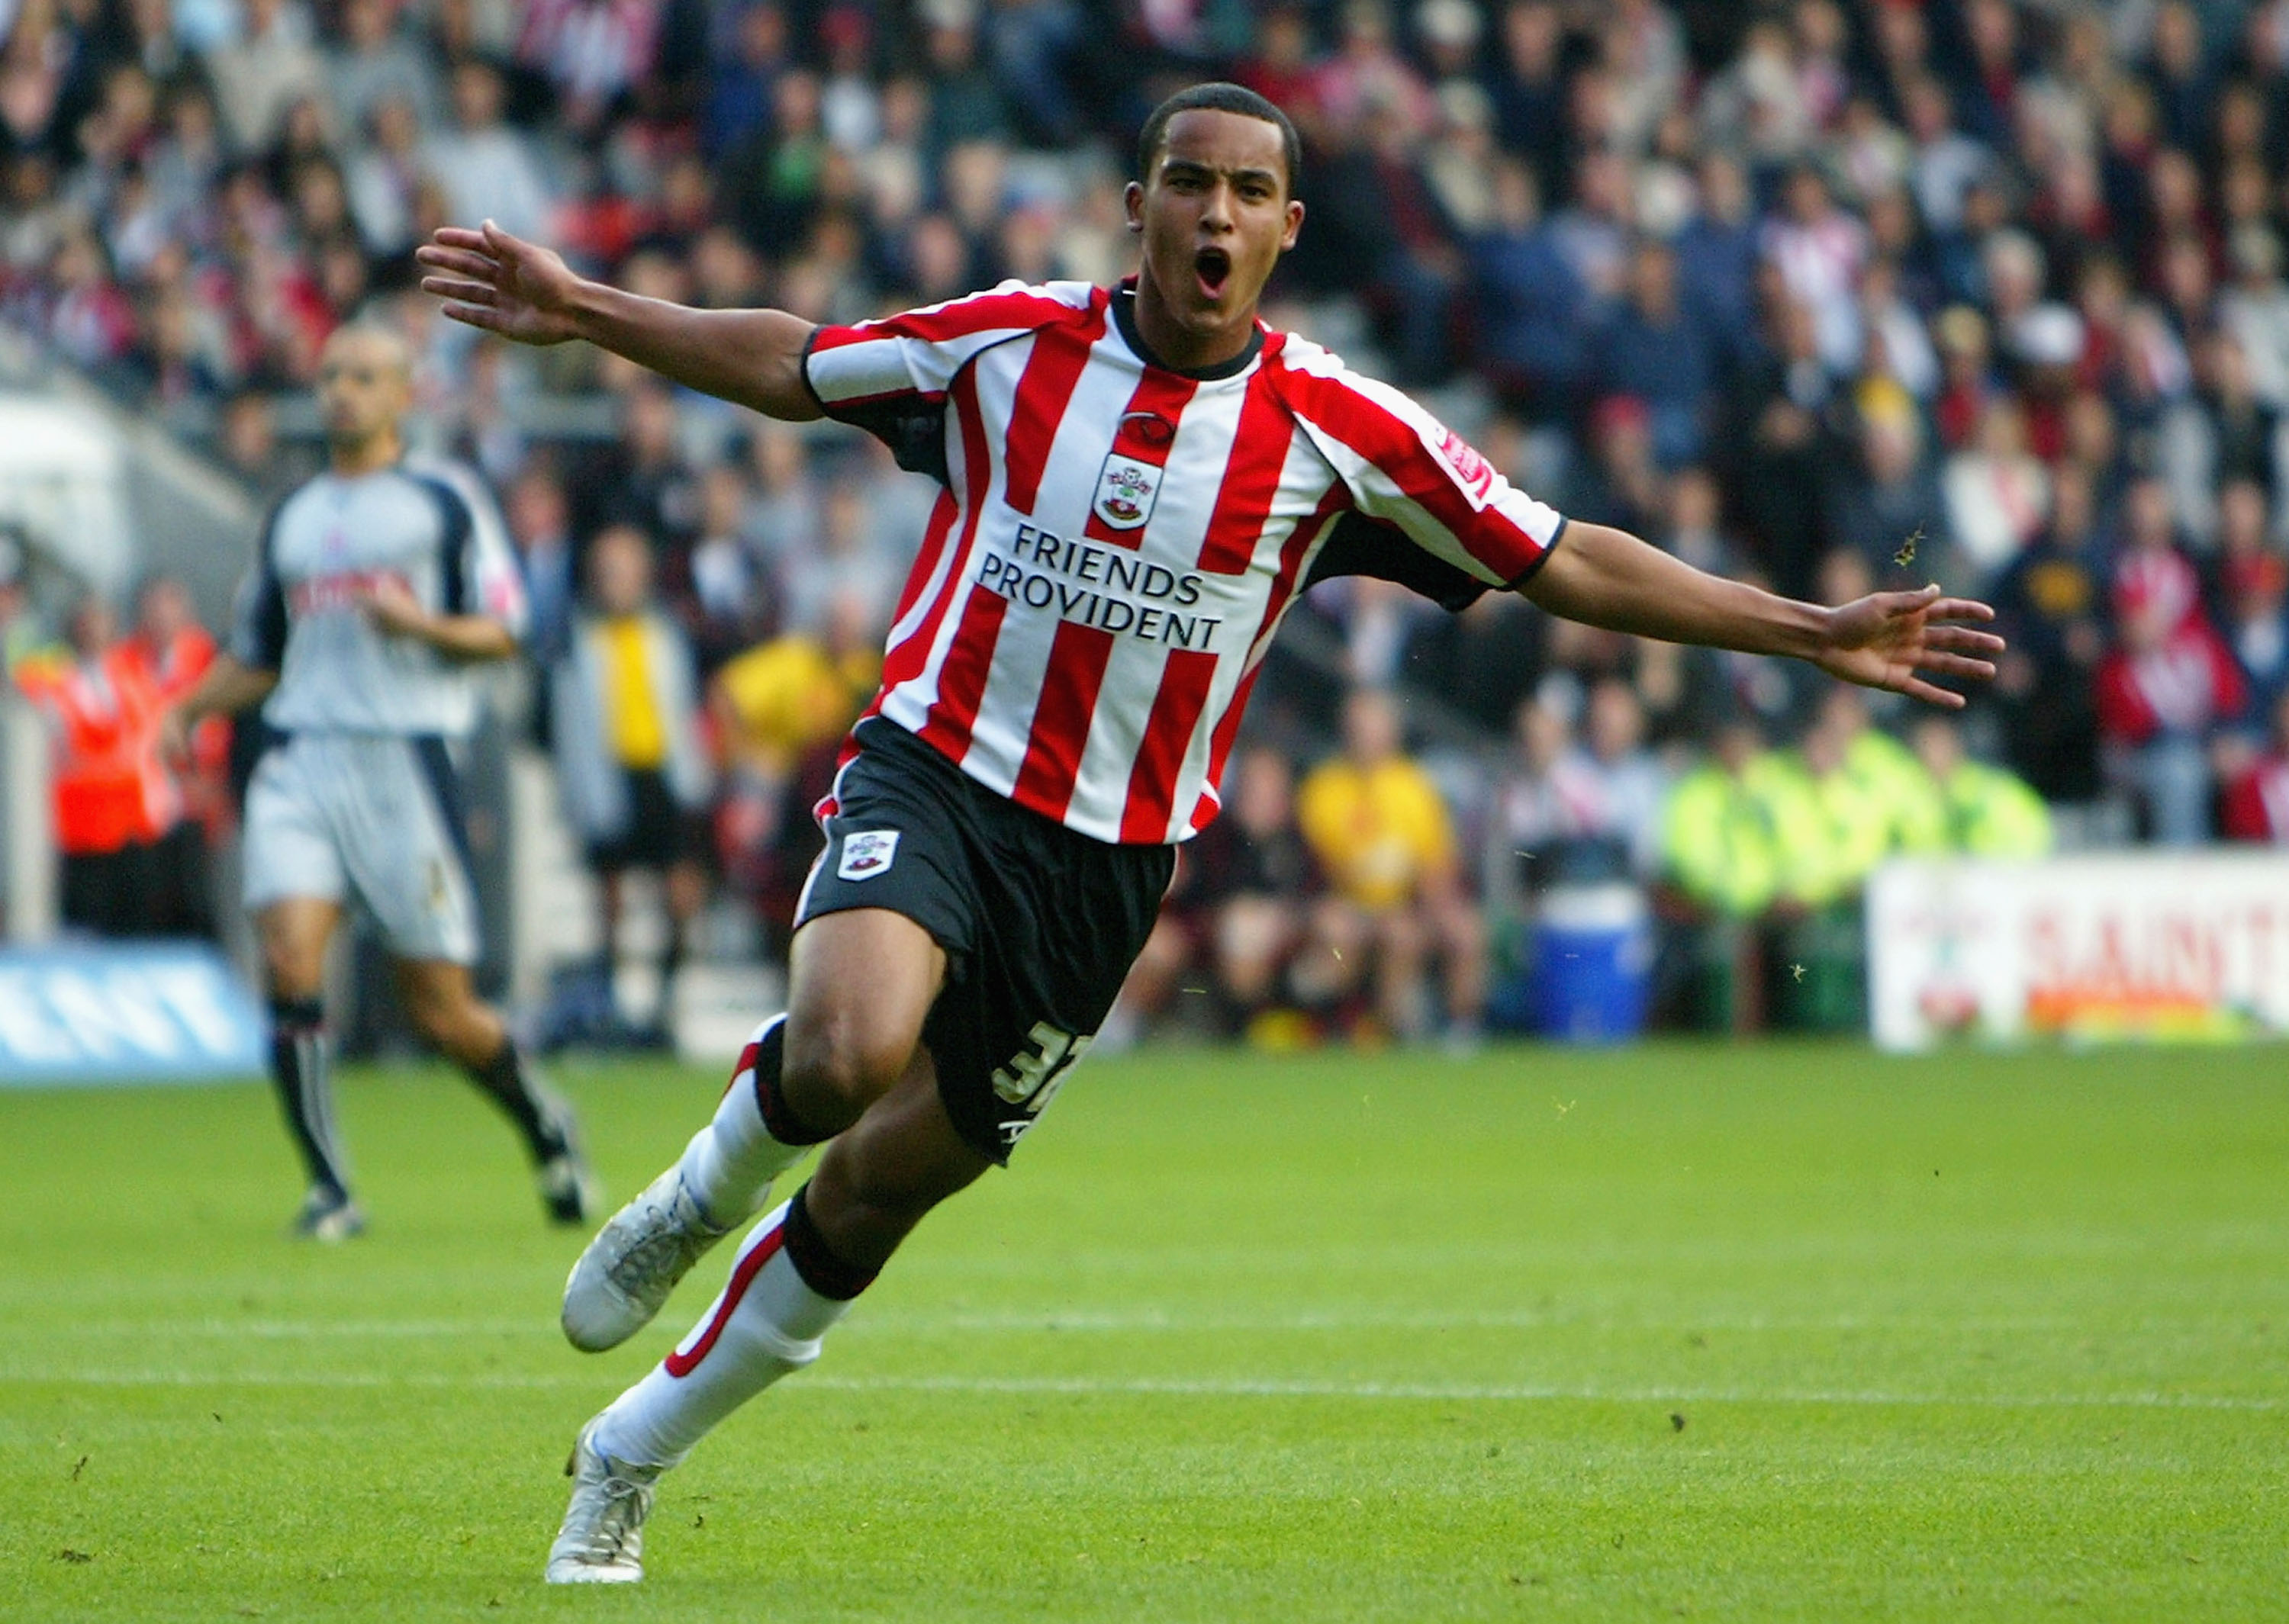 SOUTHAMPTON, UNITED KINGDOM - OCTOBER 29: Theo Walcott of Southampton celebrates scoring a goal during the Coca-Cola Championship match between Southampton and Stoke City at St Mary's Stadium on October 29, 2005 in Southampton, England. (Photo by Julian Finney/Getty Images)